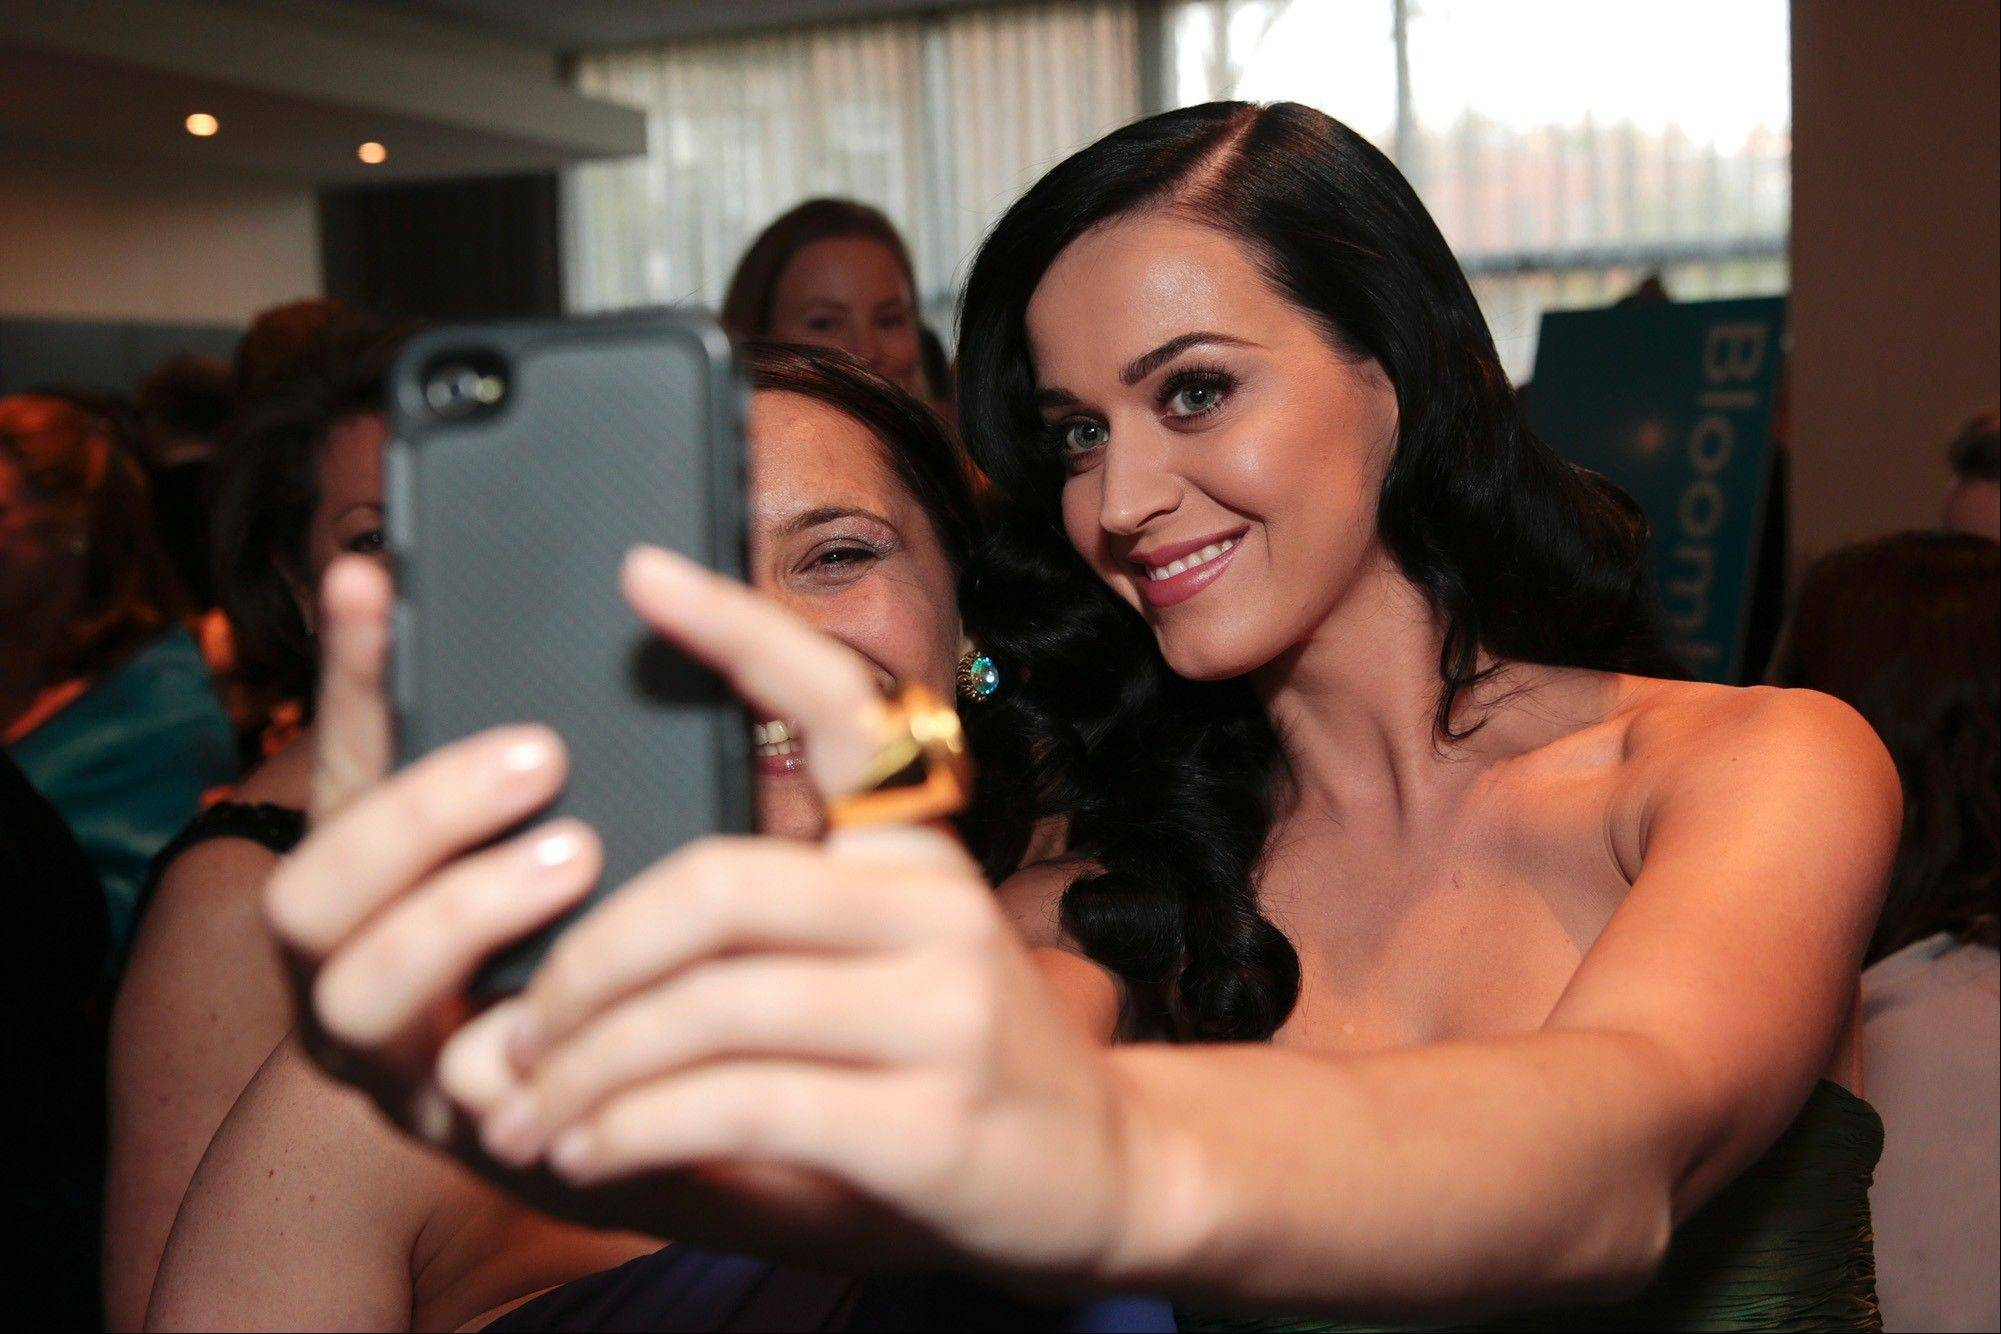 Bloomberg Katy Perry, Justin Bieber and Lady Gaga are Twitter�s most followed celebrities and have even more Facebook �likes.� Amping up the rivalry between the two web upstarts, Facebook is preparing a tool that makes it easier for celebs to chat with fans, a source says. Shown, Perry takes a photo before April�s White House Correspondents' Association dinner in Washington.